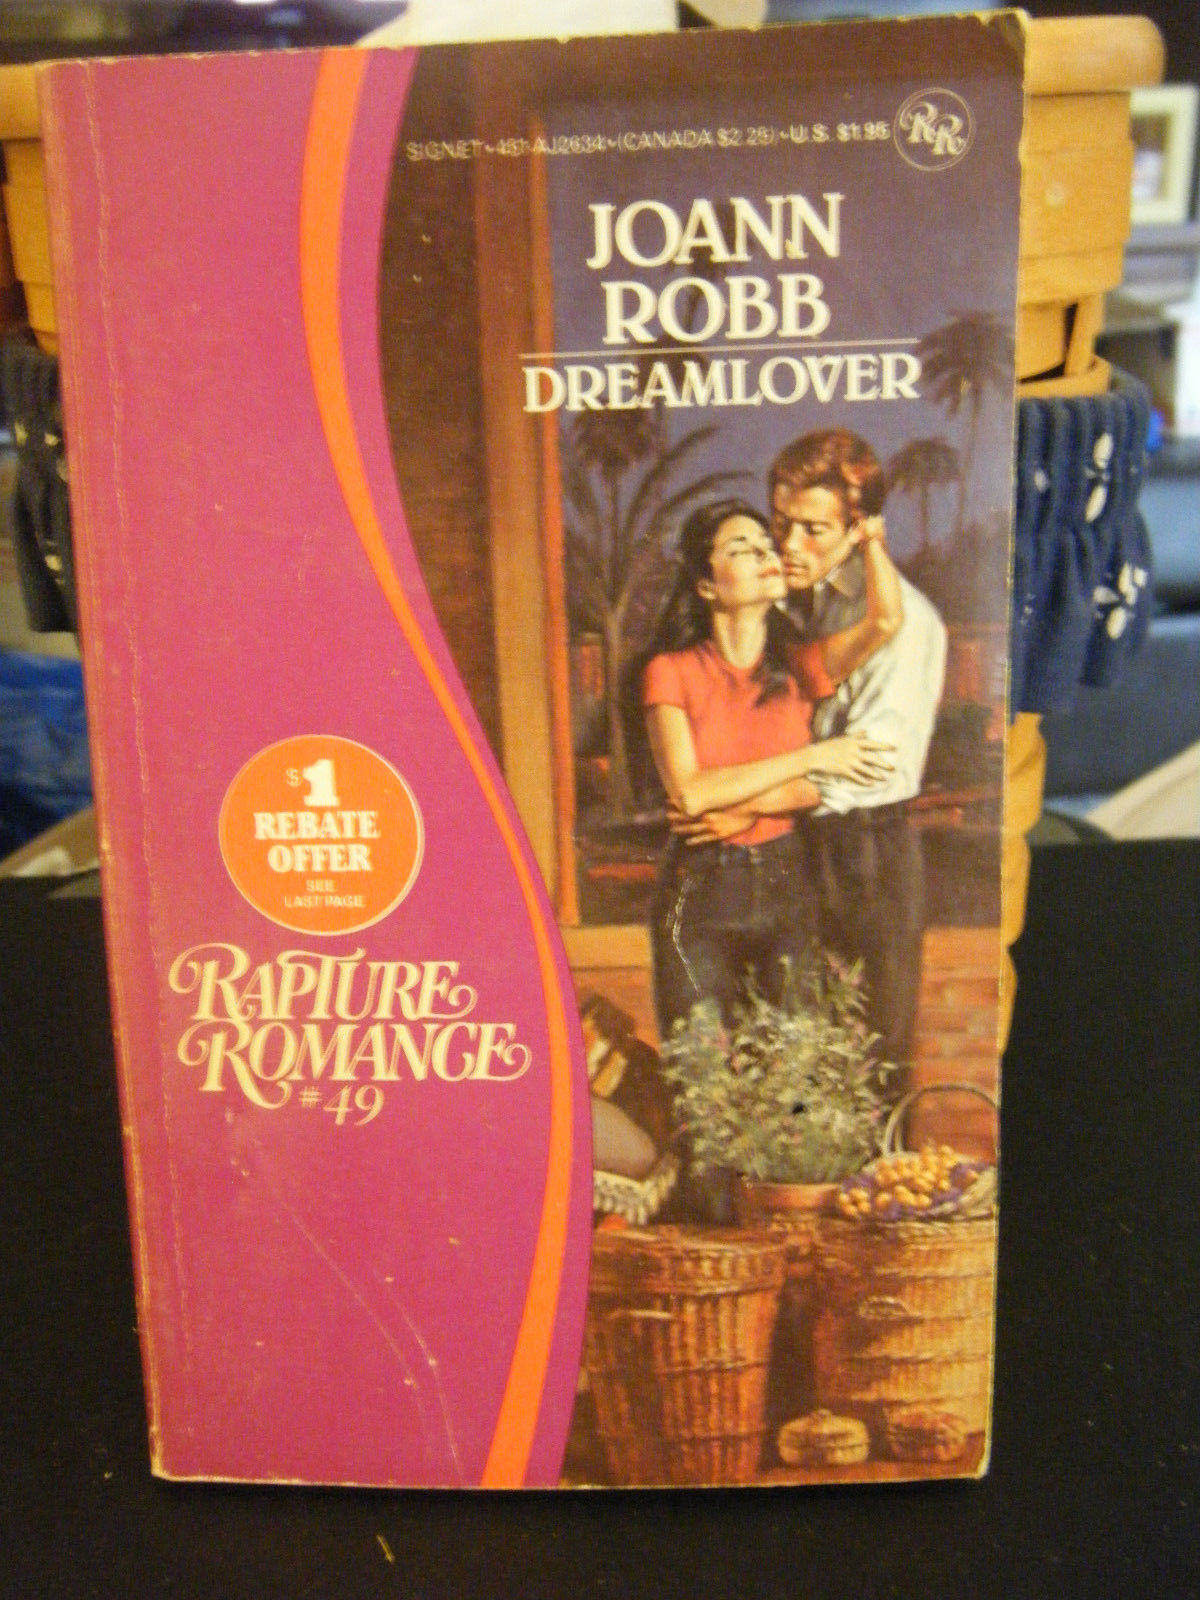 Dreamlover by JoAnn Robb (1984, Paperback)